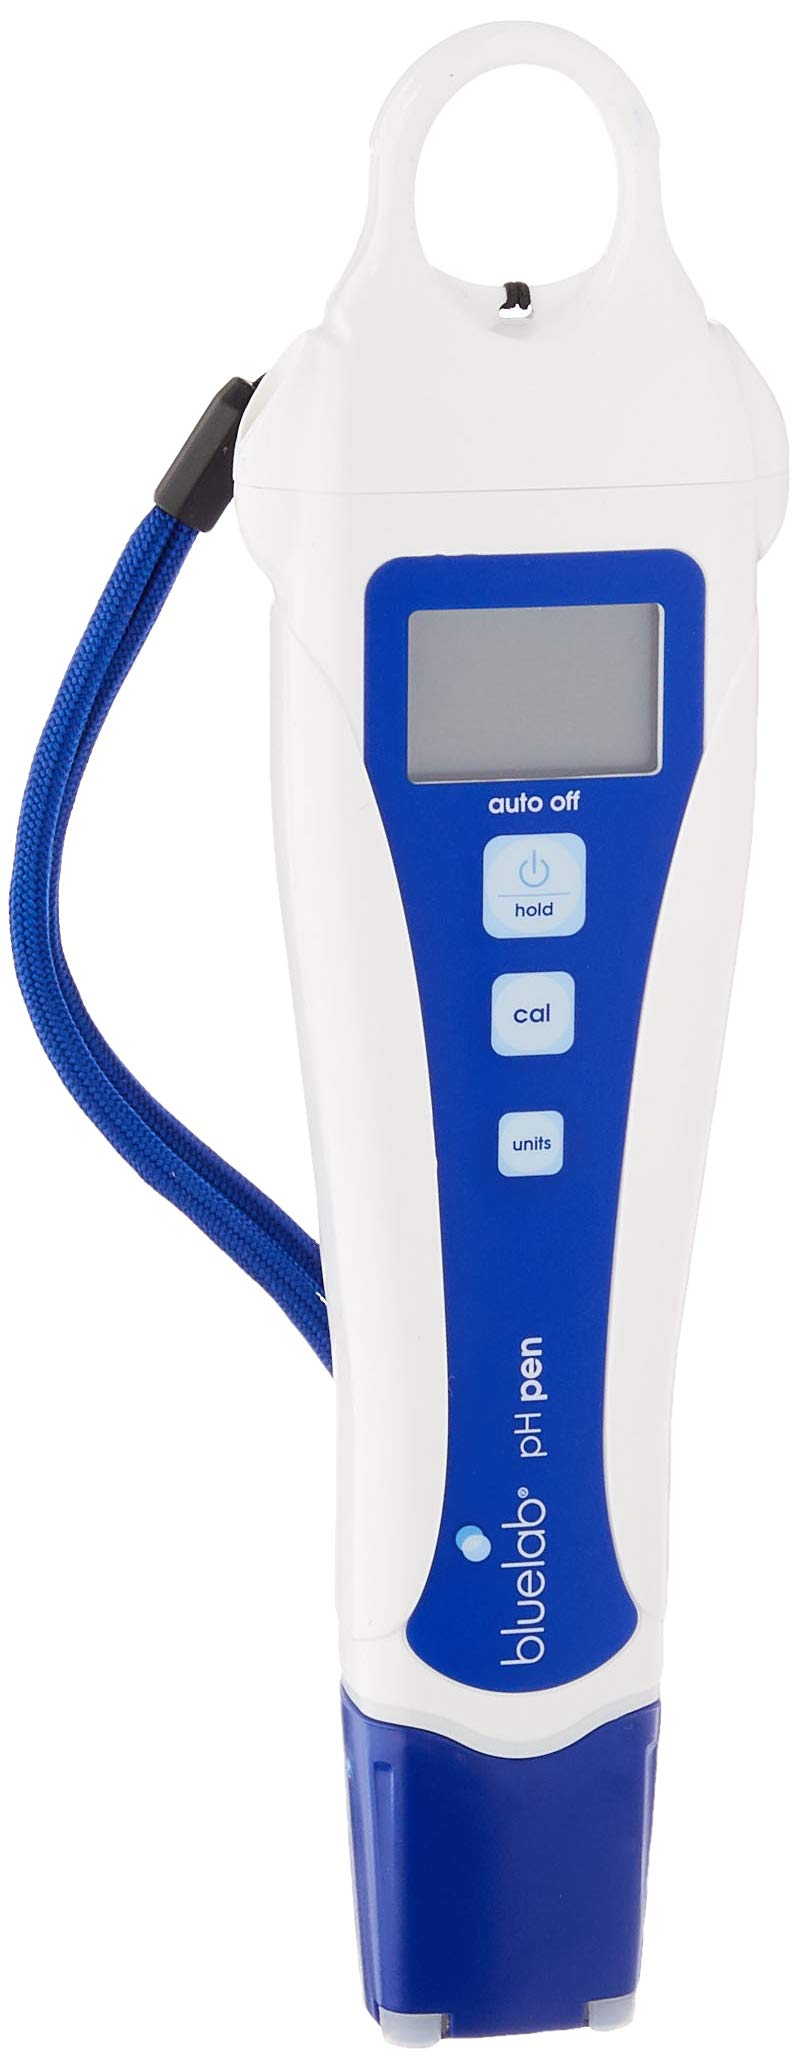 Bluelab PENPH pH Pen Fully Waterproof Pocket Tester, Easy Calibration, Double Junction Probe for Improved Accuracy and Durability